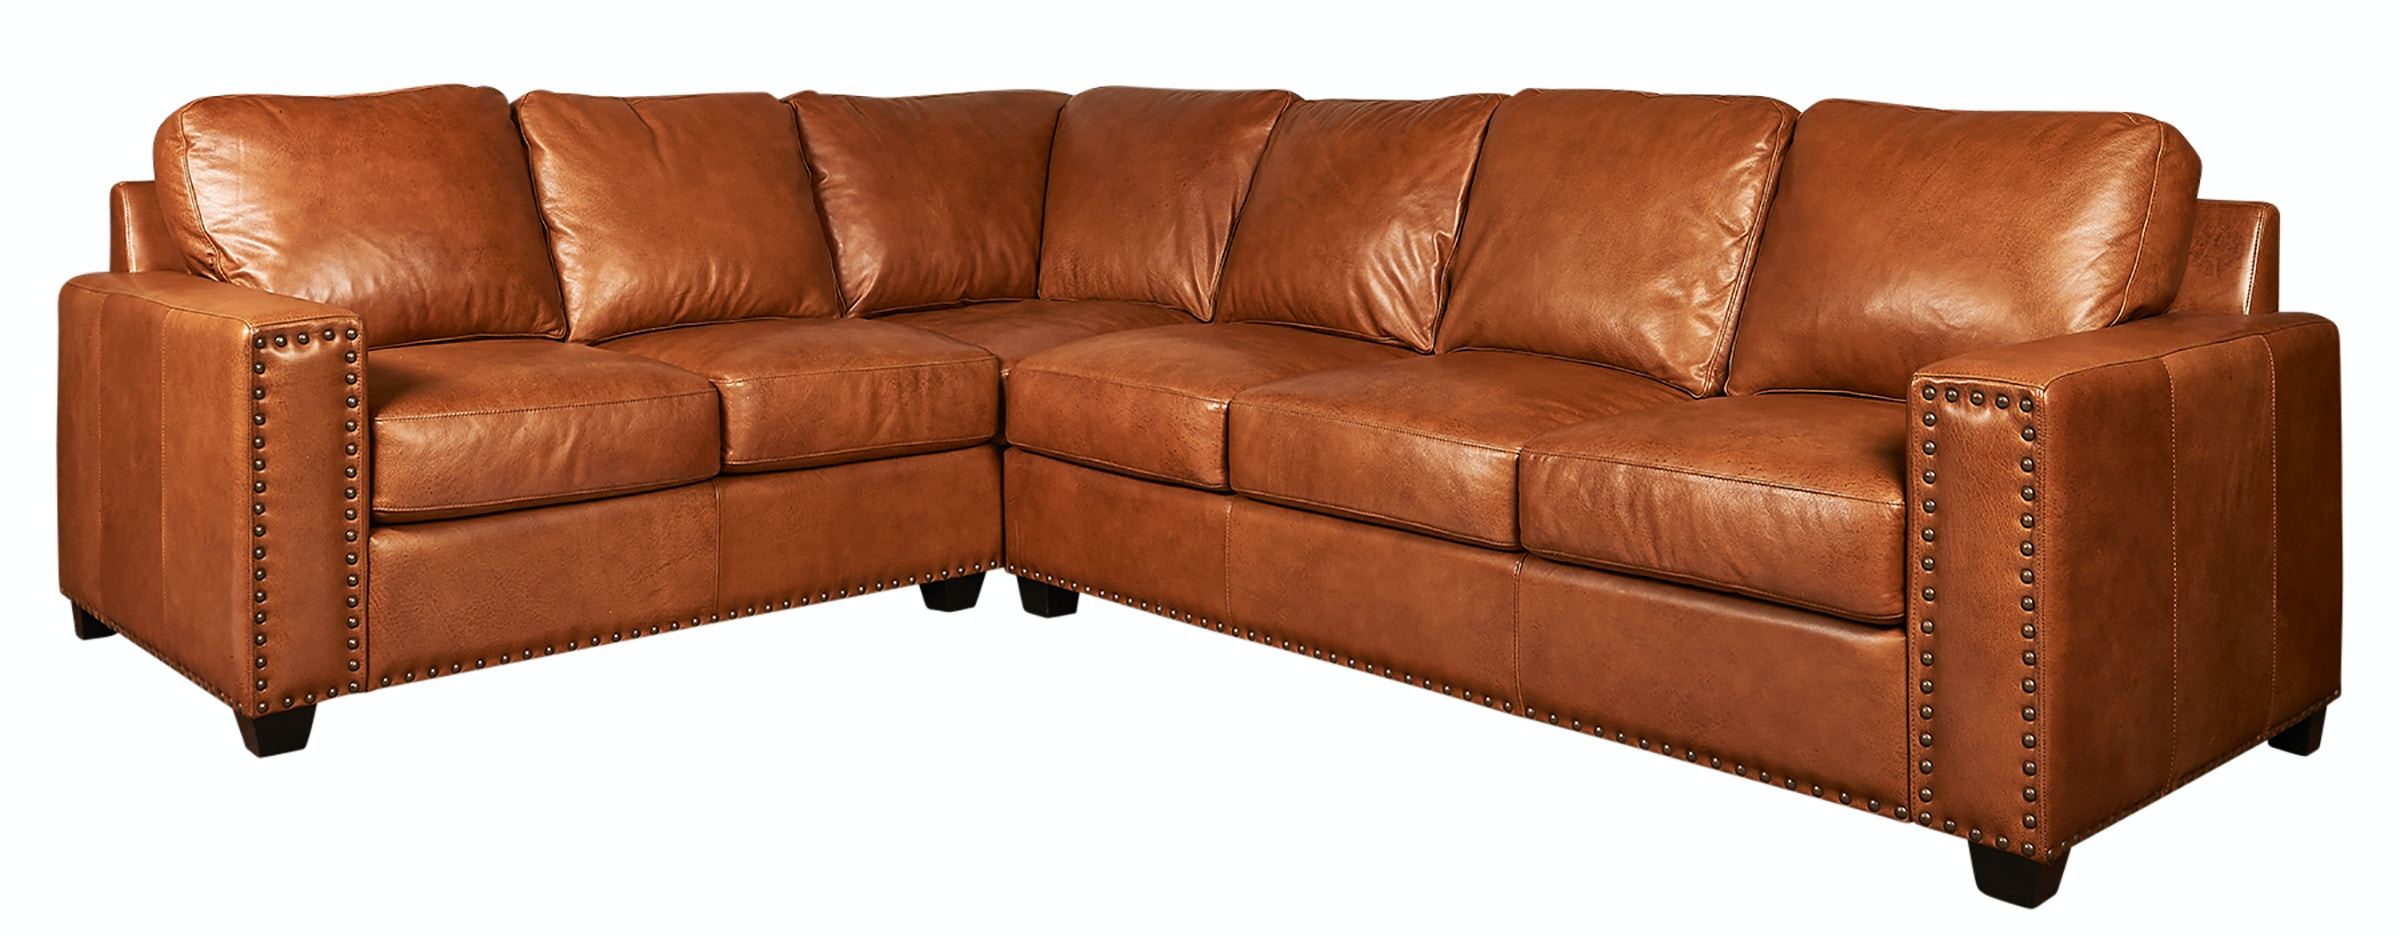 Lovely Legacy Leather Sectional S700